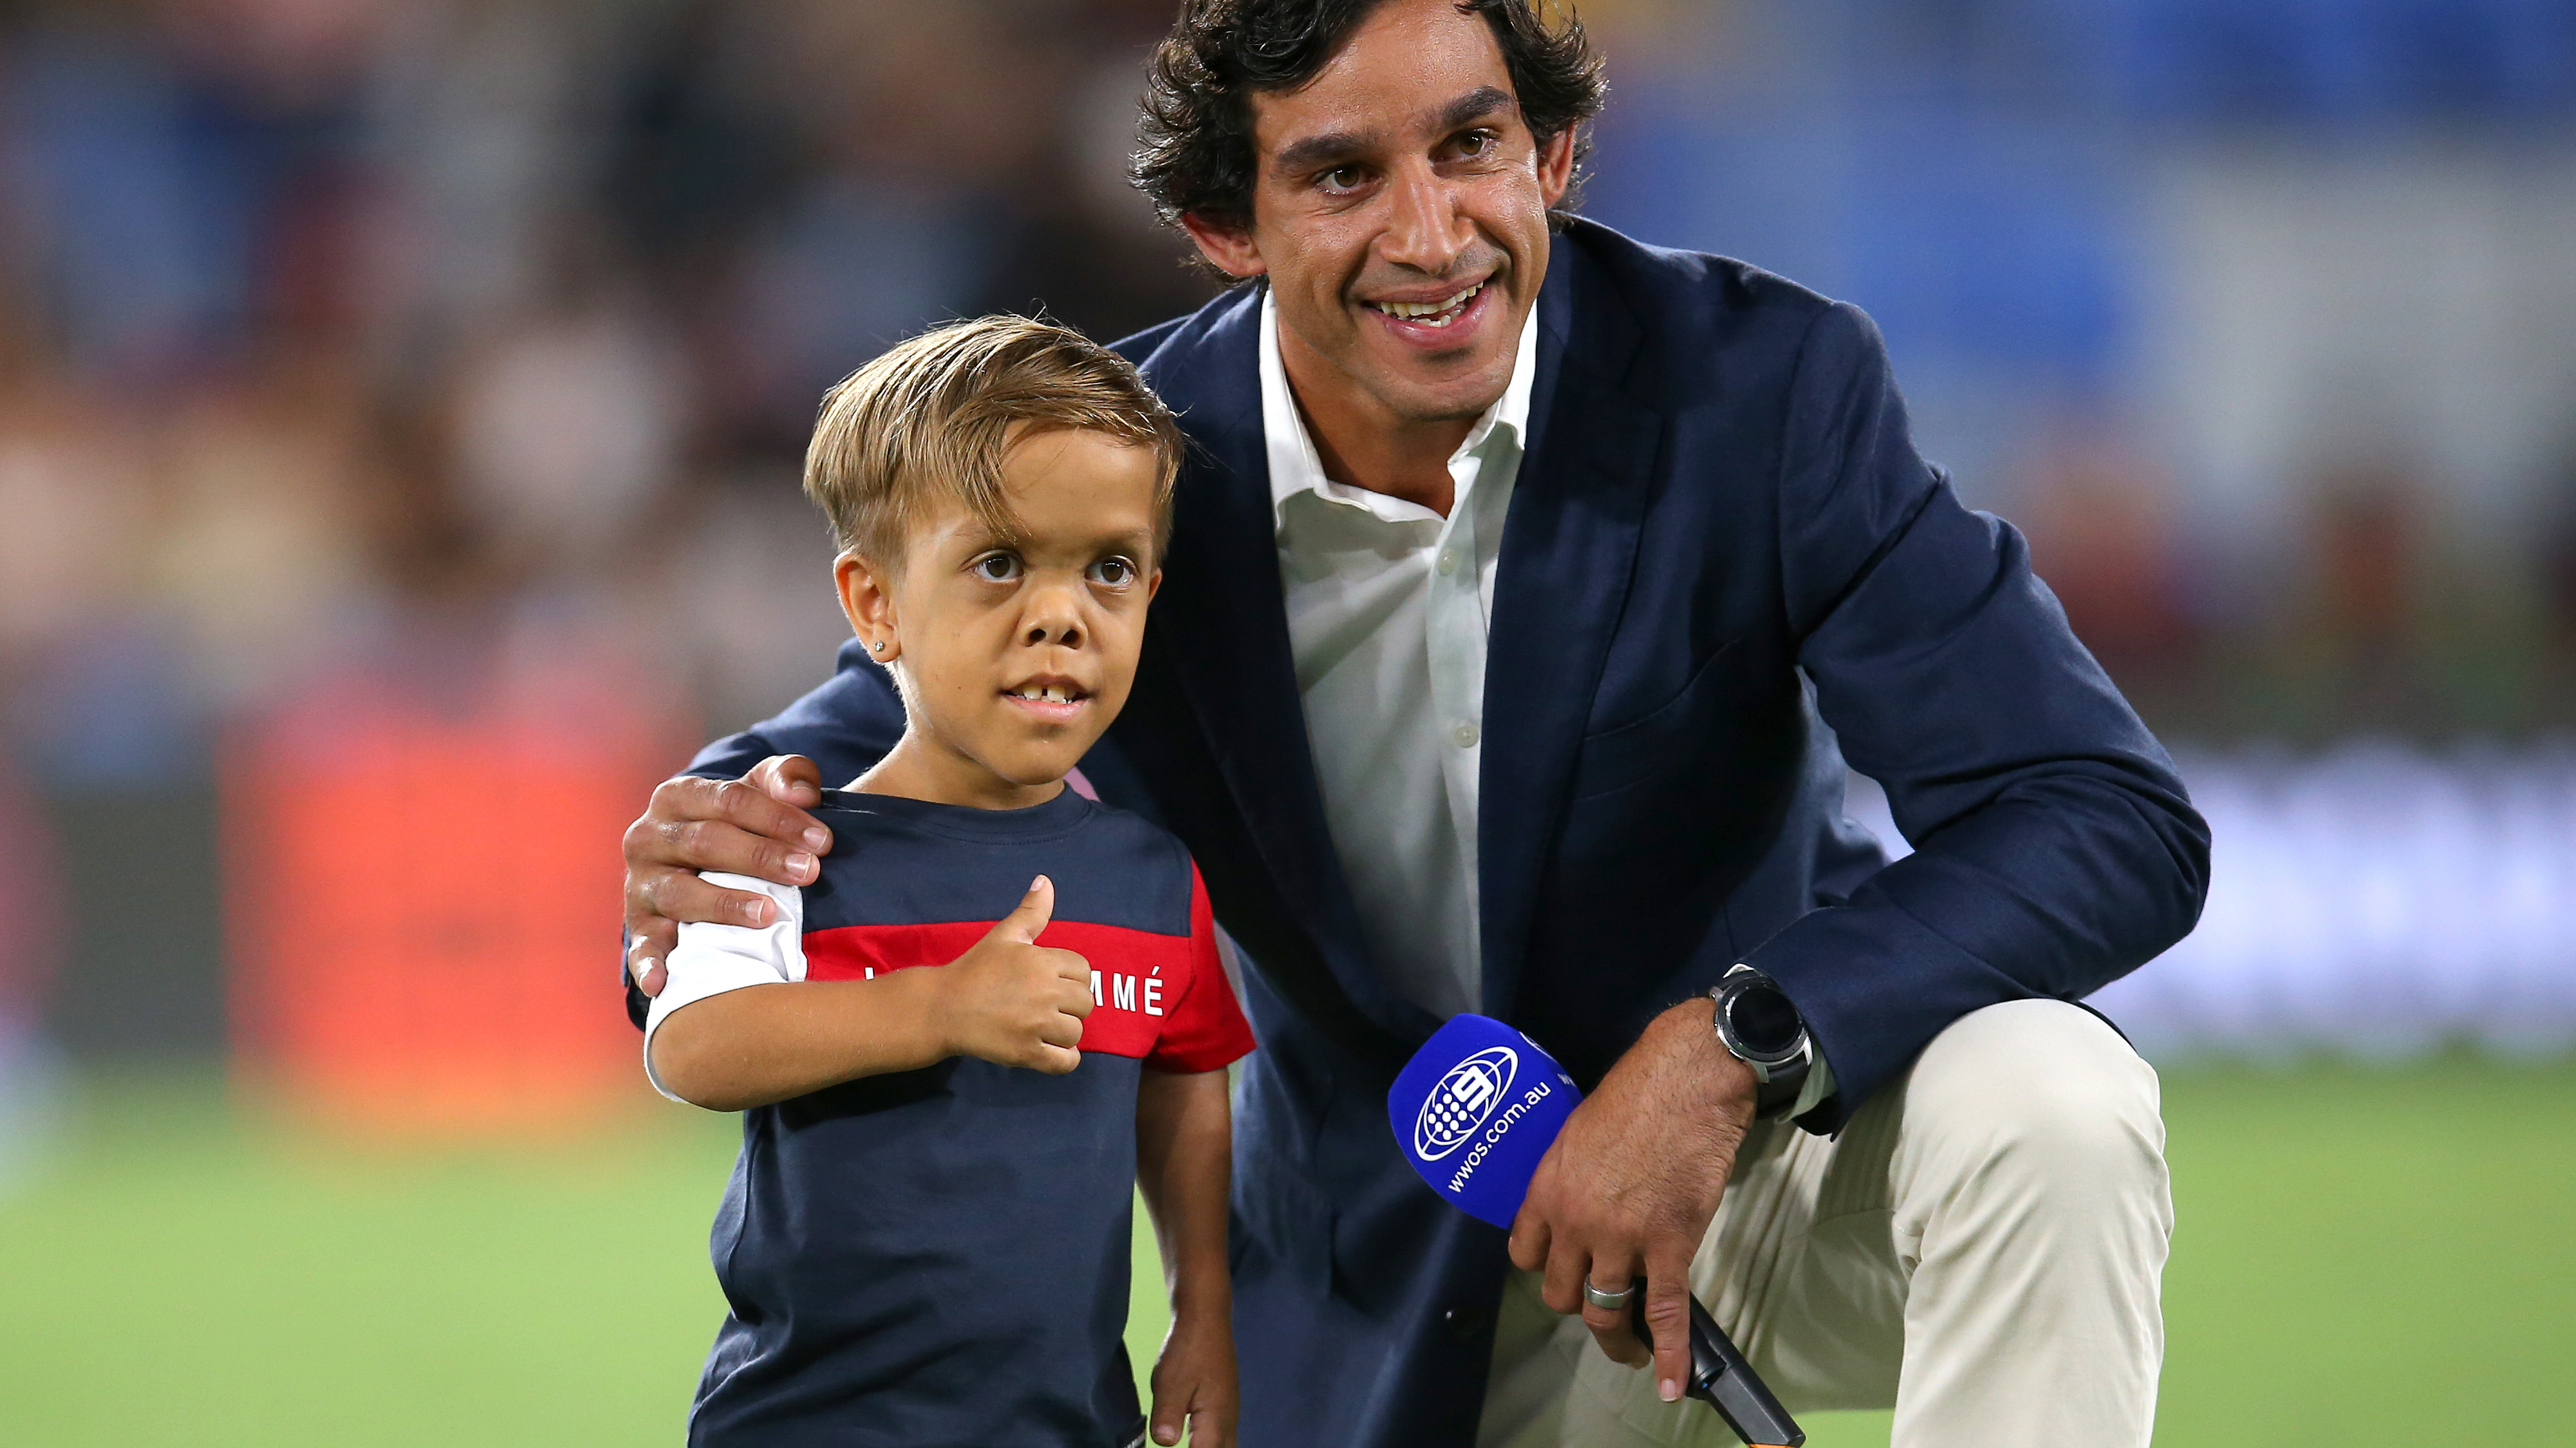 Johnathan Thurston embracing Quaden Bayles at last year's All Star Game.